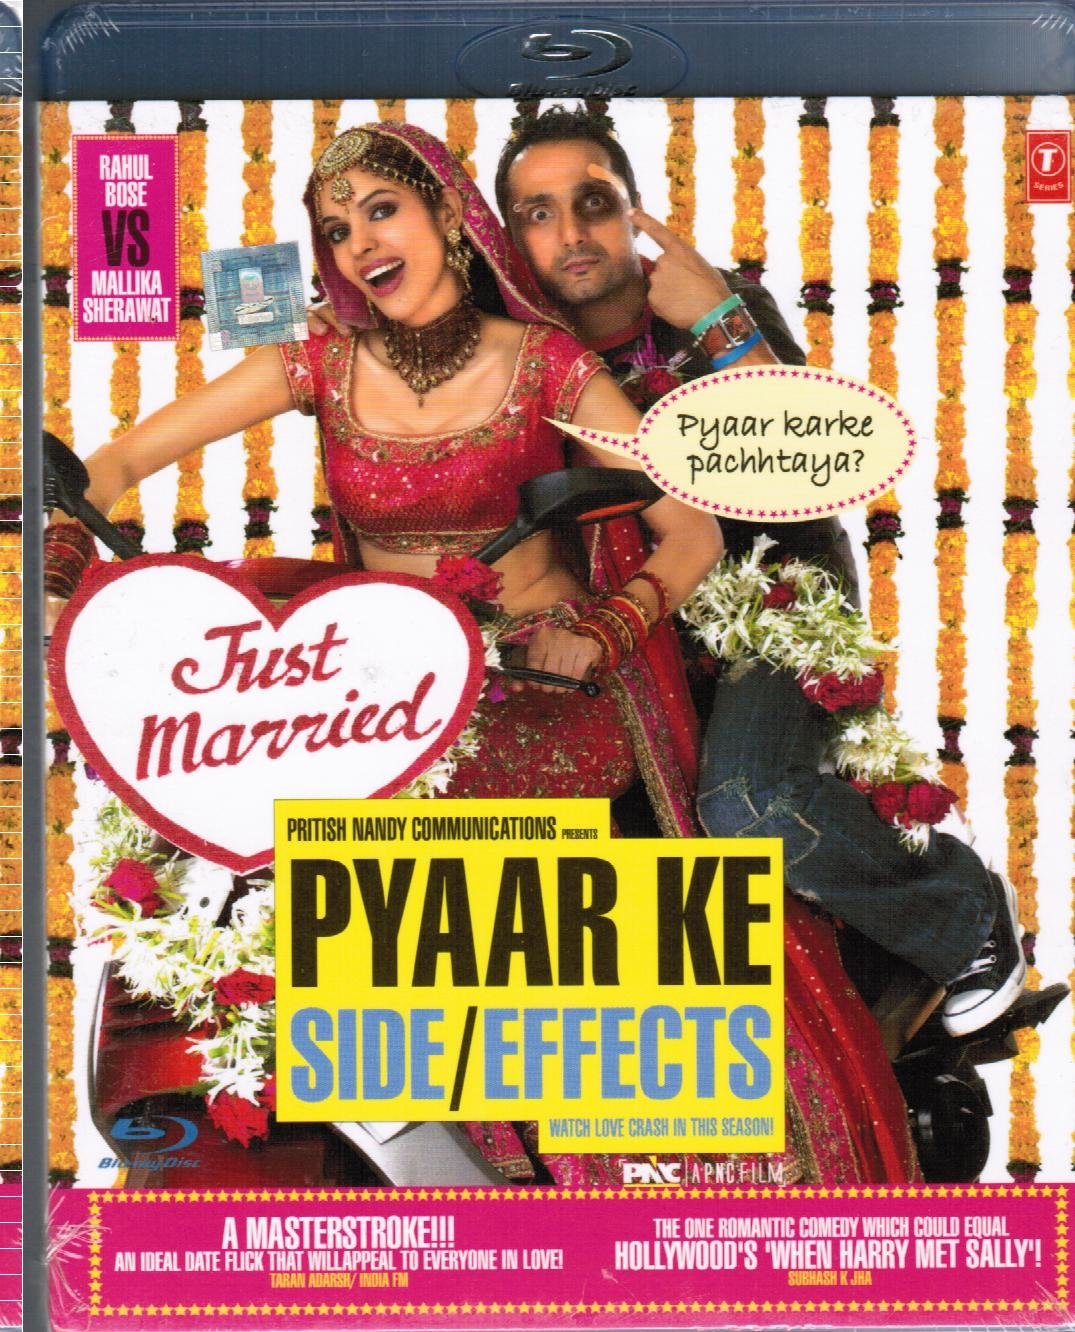 Pyaar Ke Side Effects 2006 BD50 Untouched BluRay 1080p T-Series DRs | G- Drive |